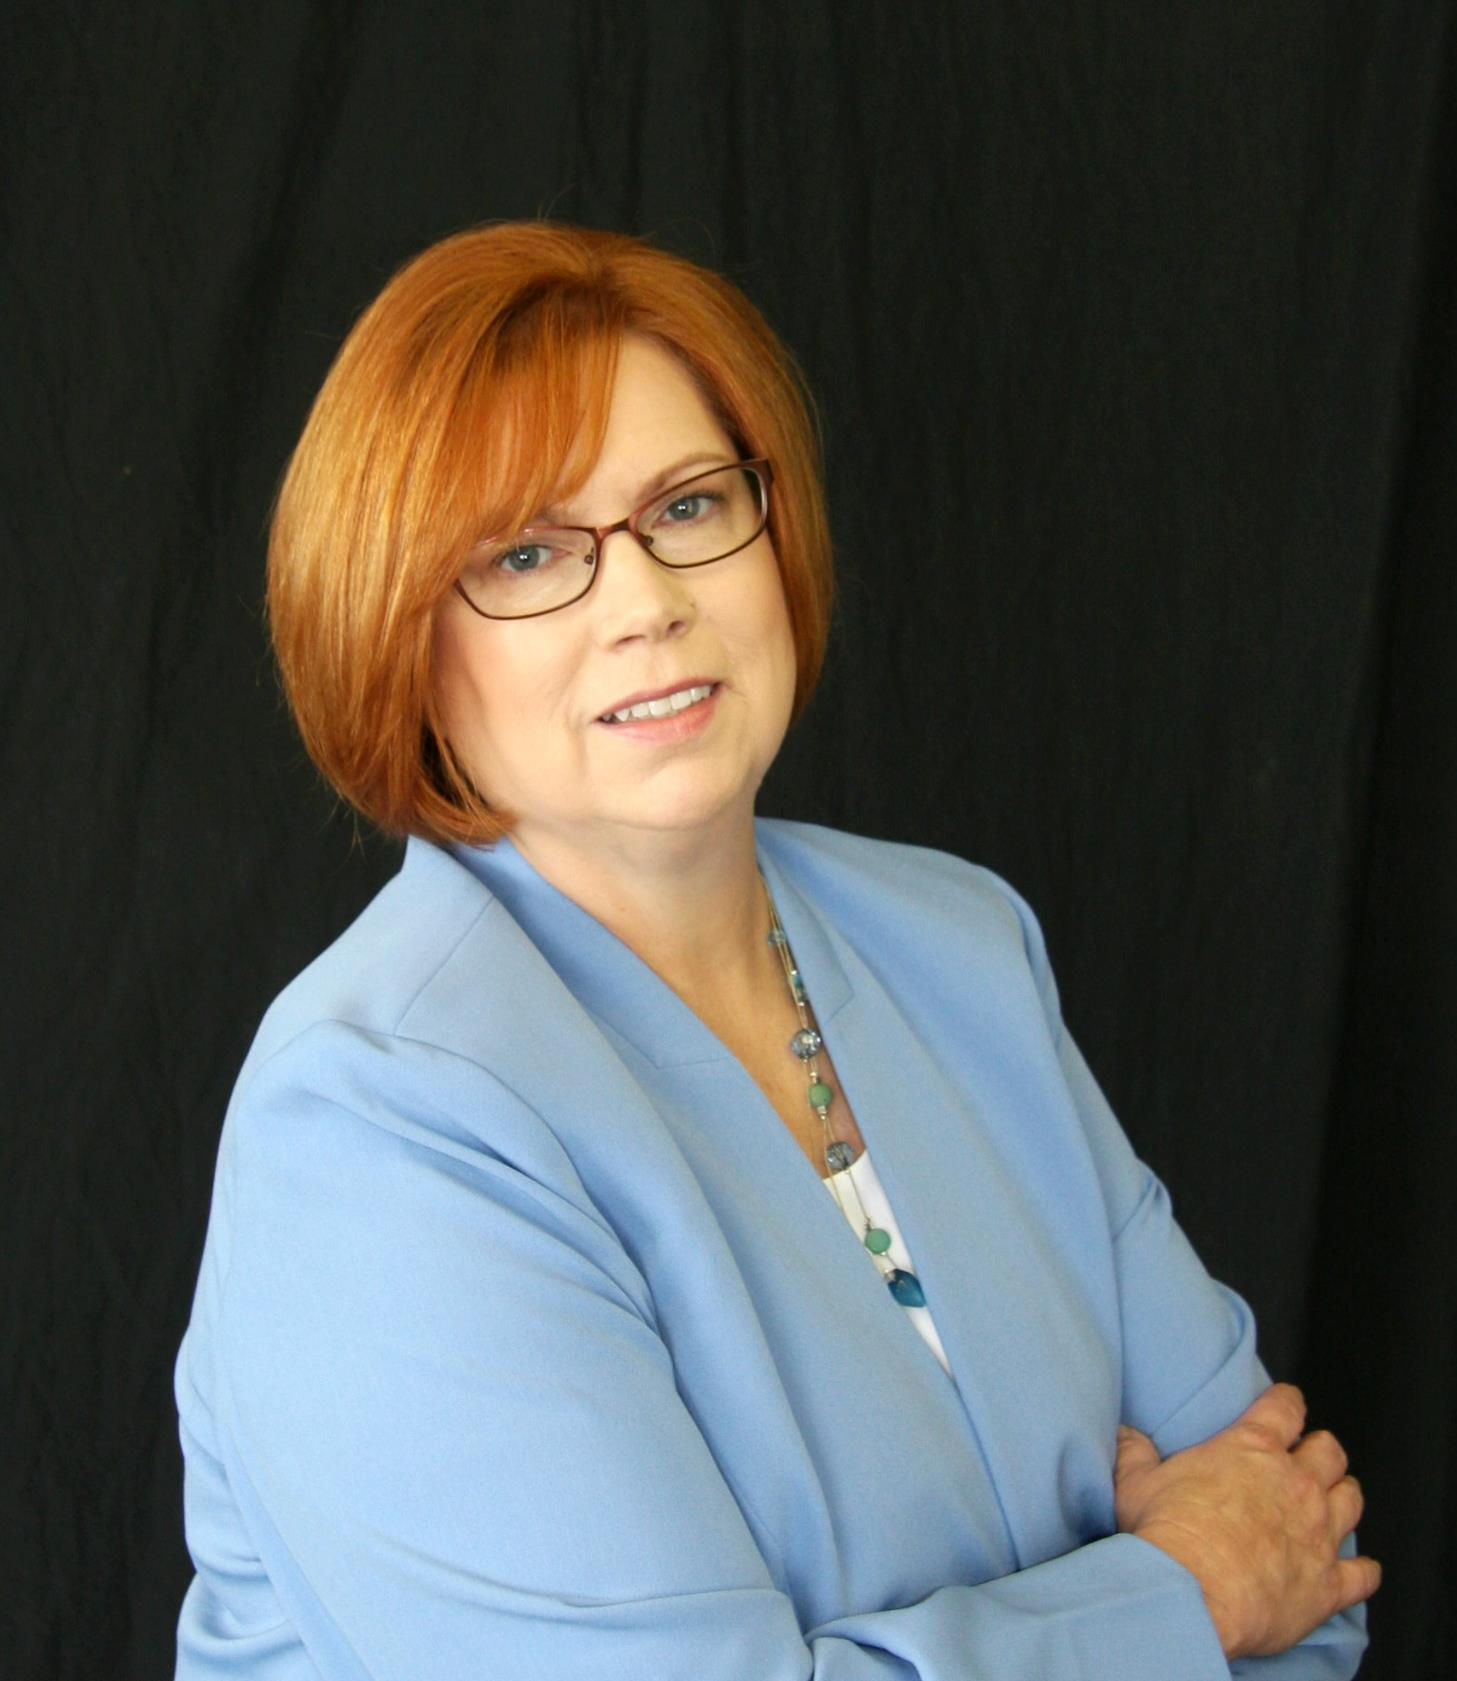 Barbara Barbara is a licensed real estate agent in Festus MO